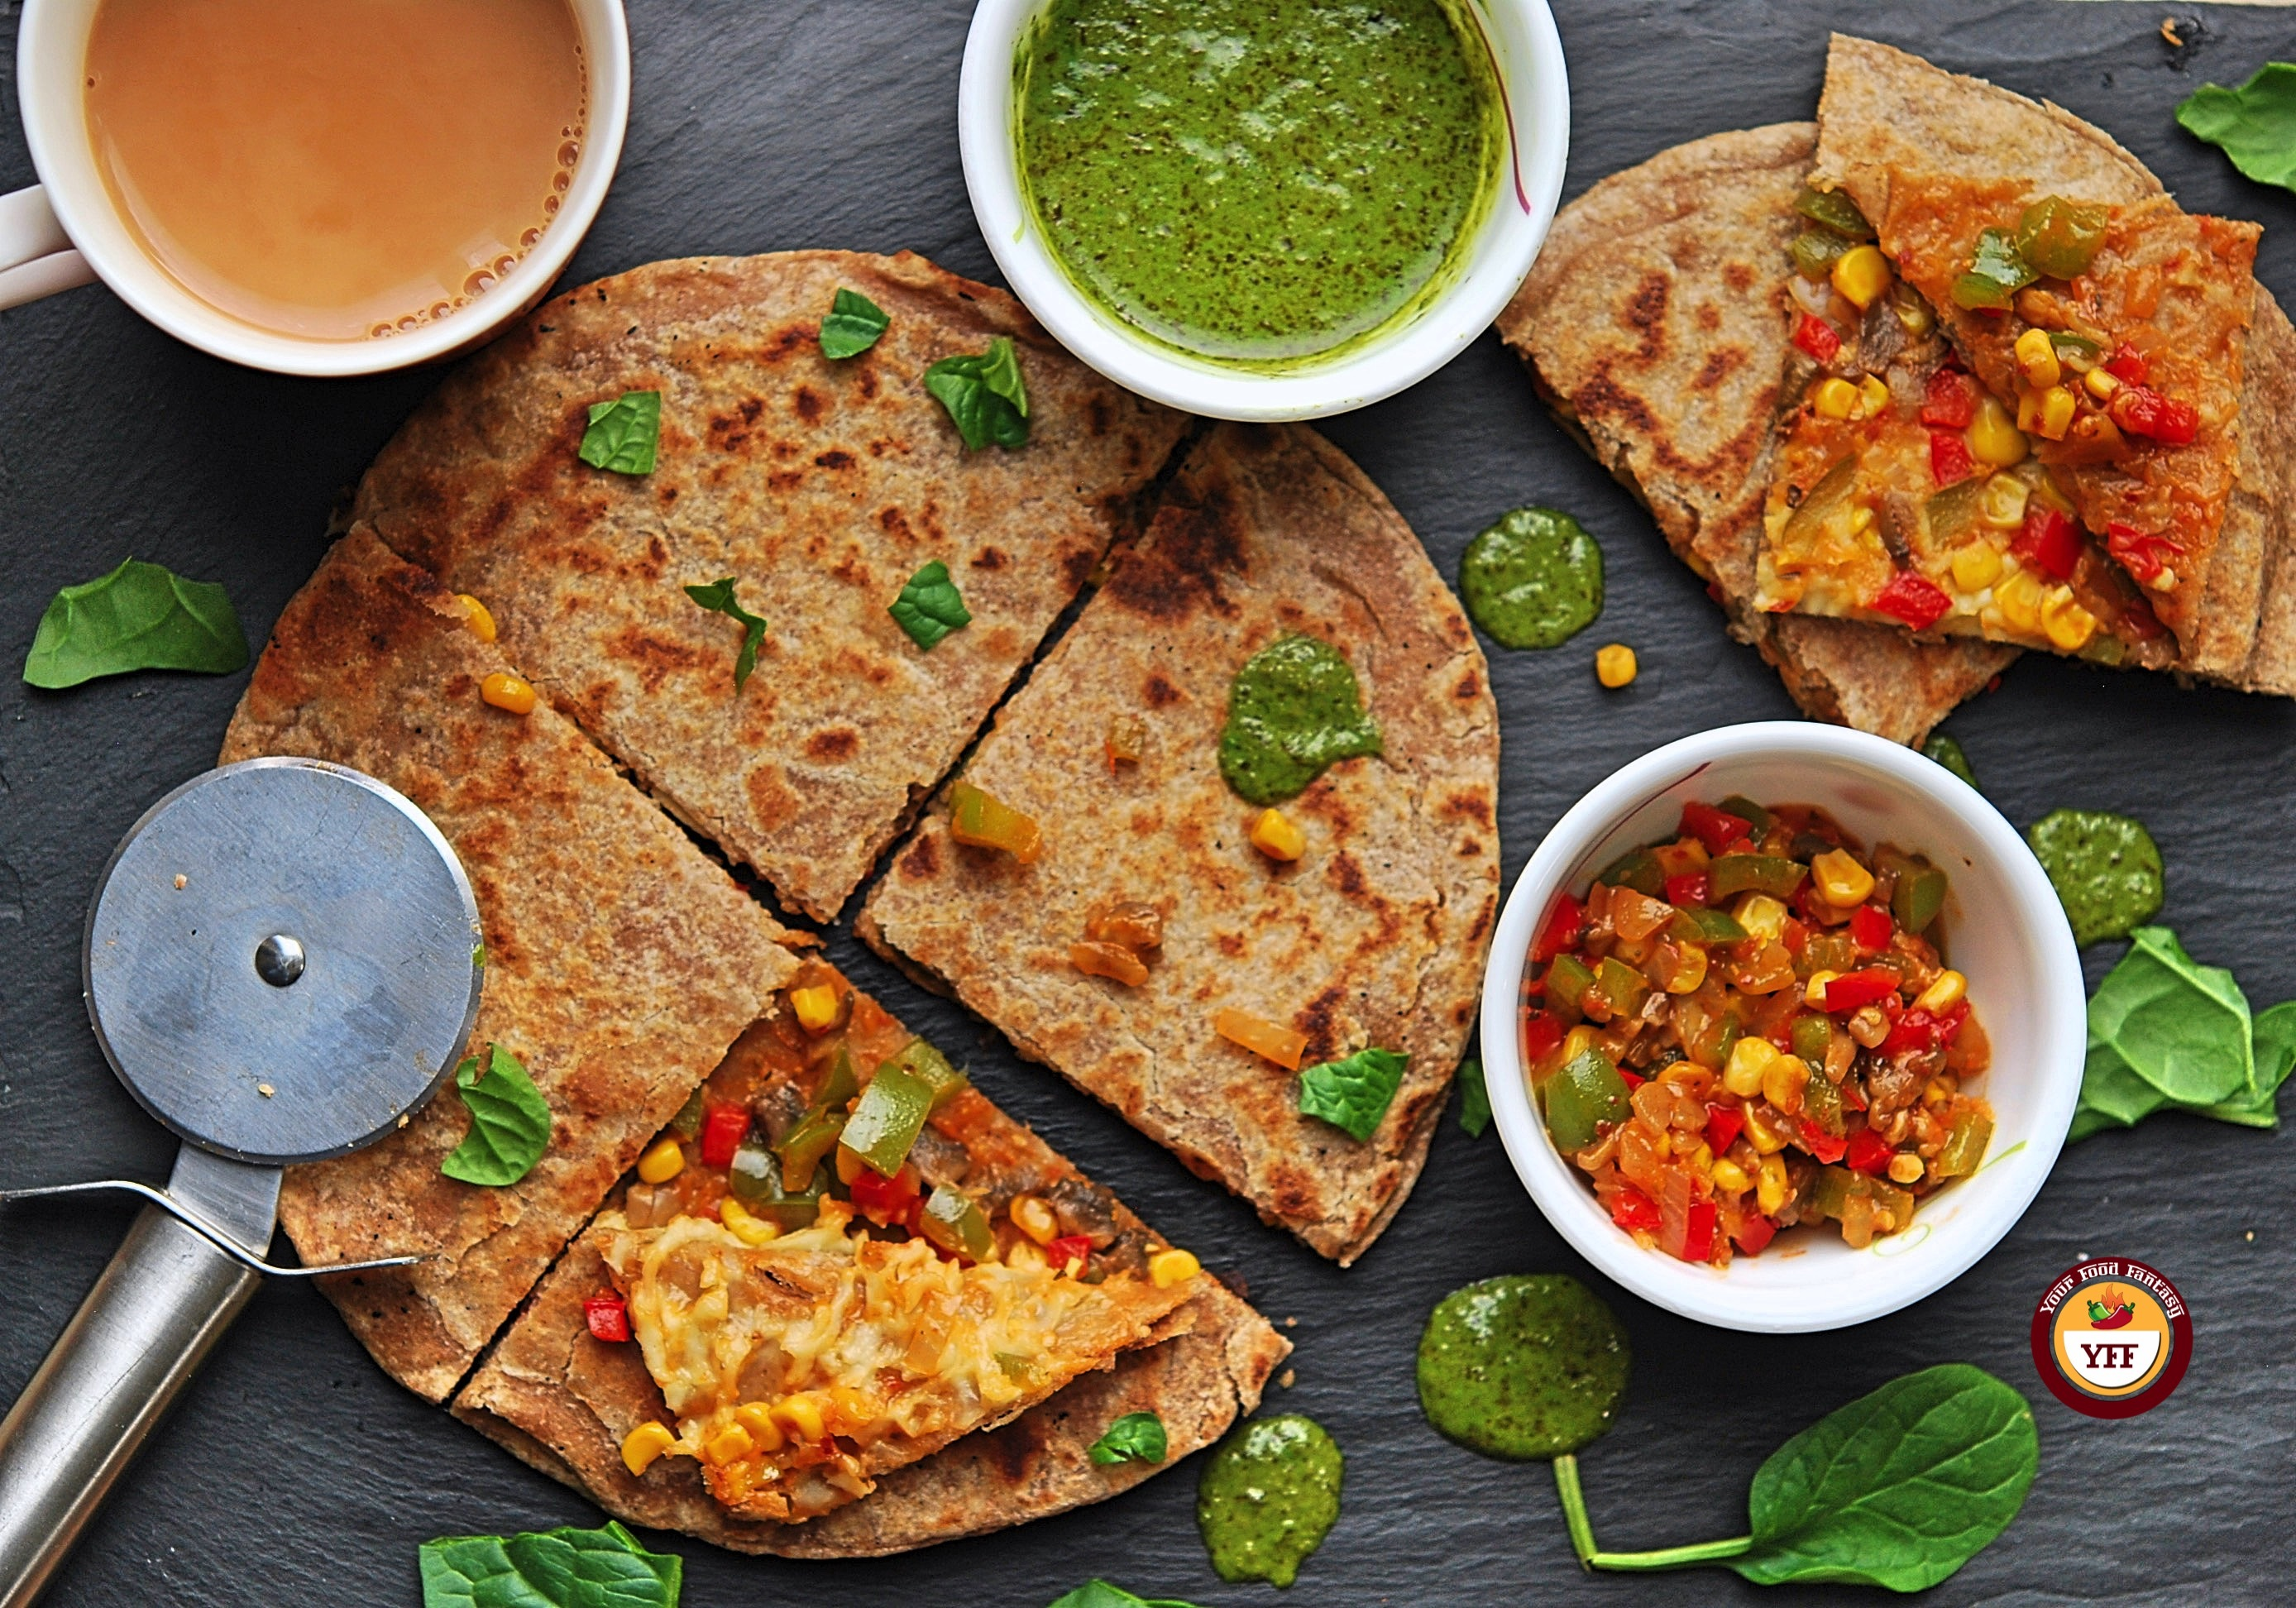 How to make Pizza Paratha | Pizza Paratha Recipe | Your Food Fantasy